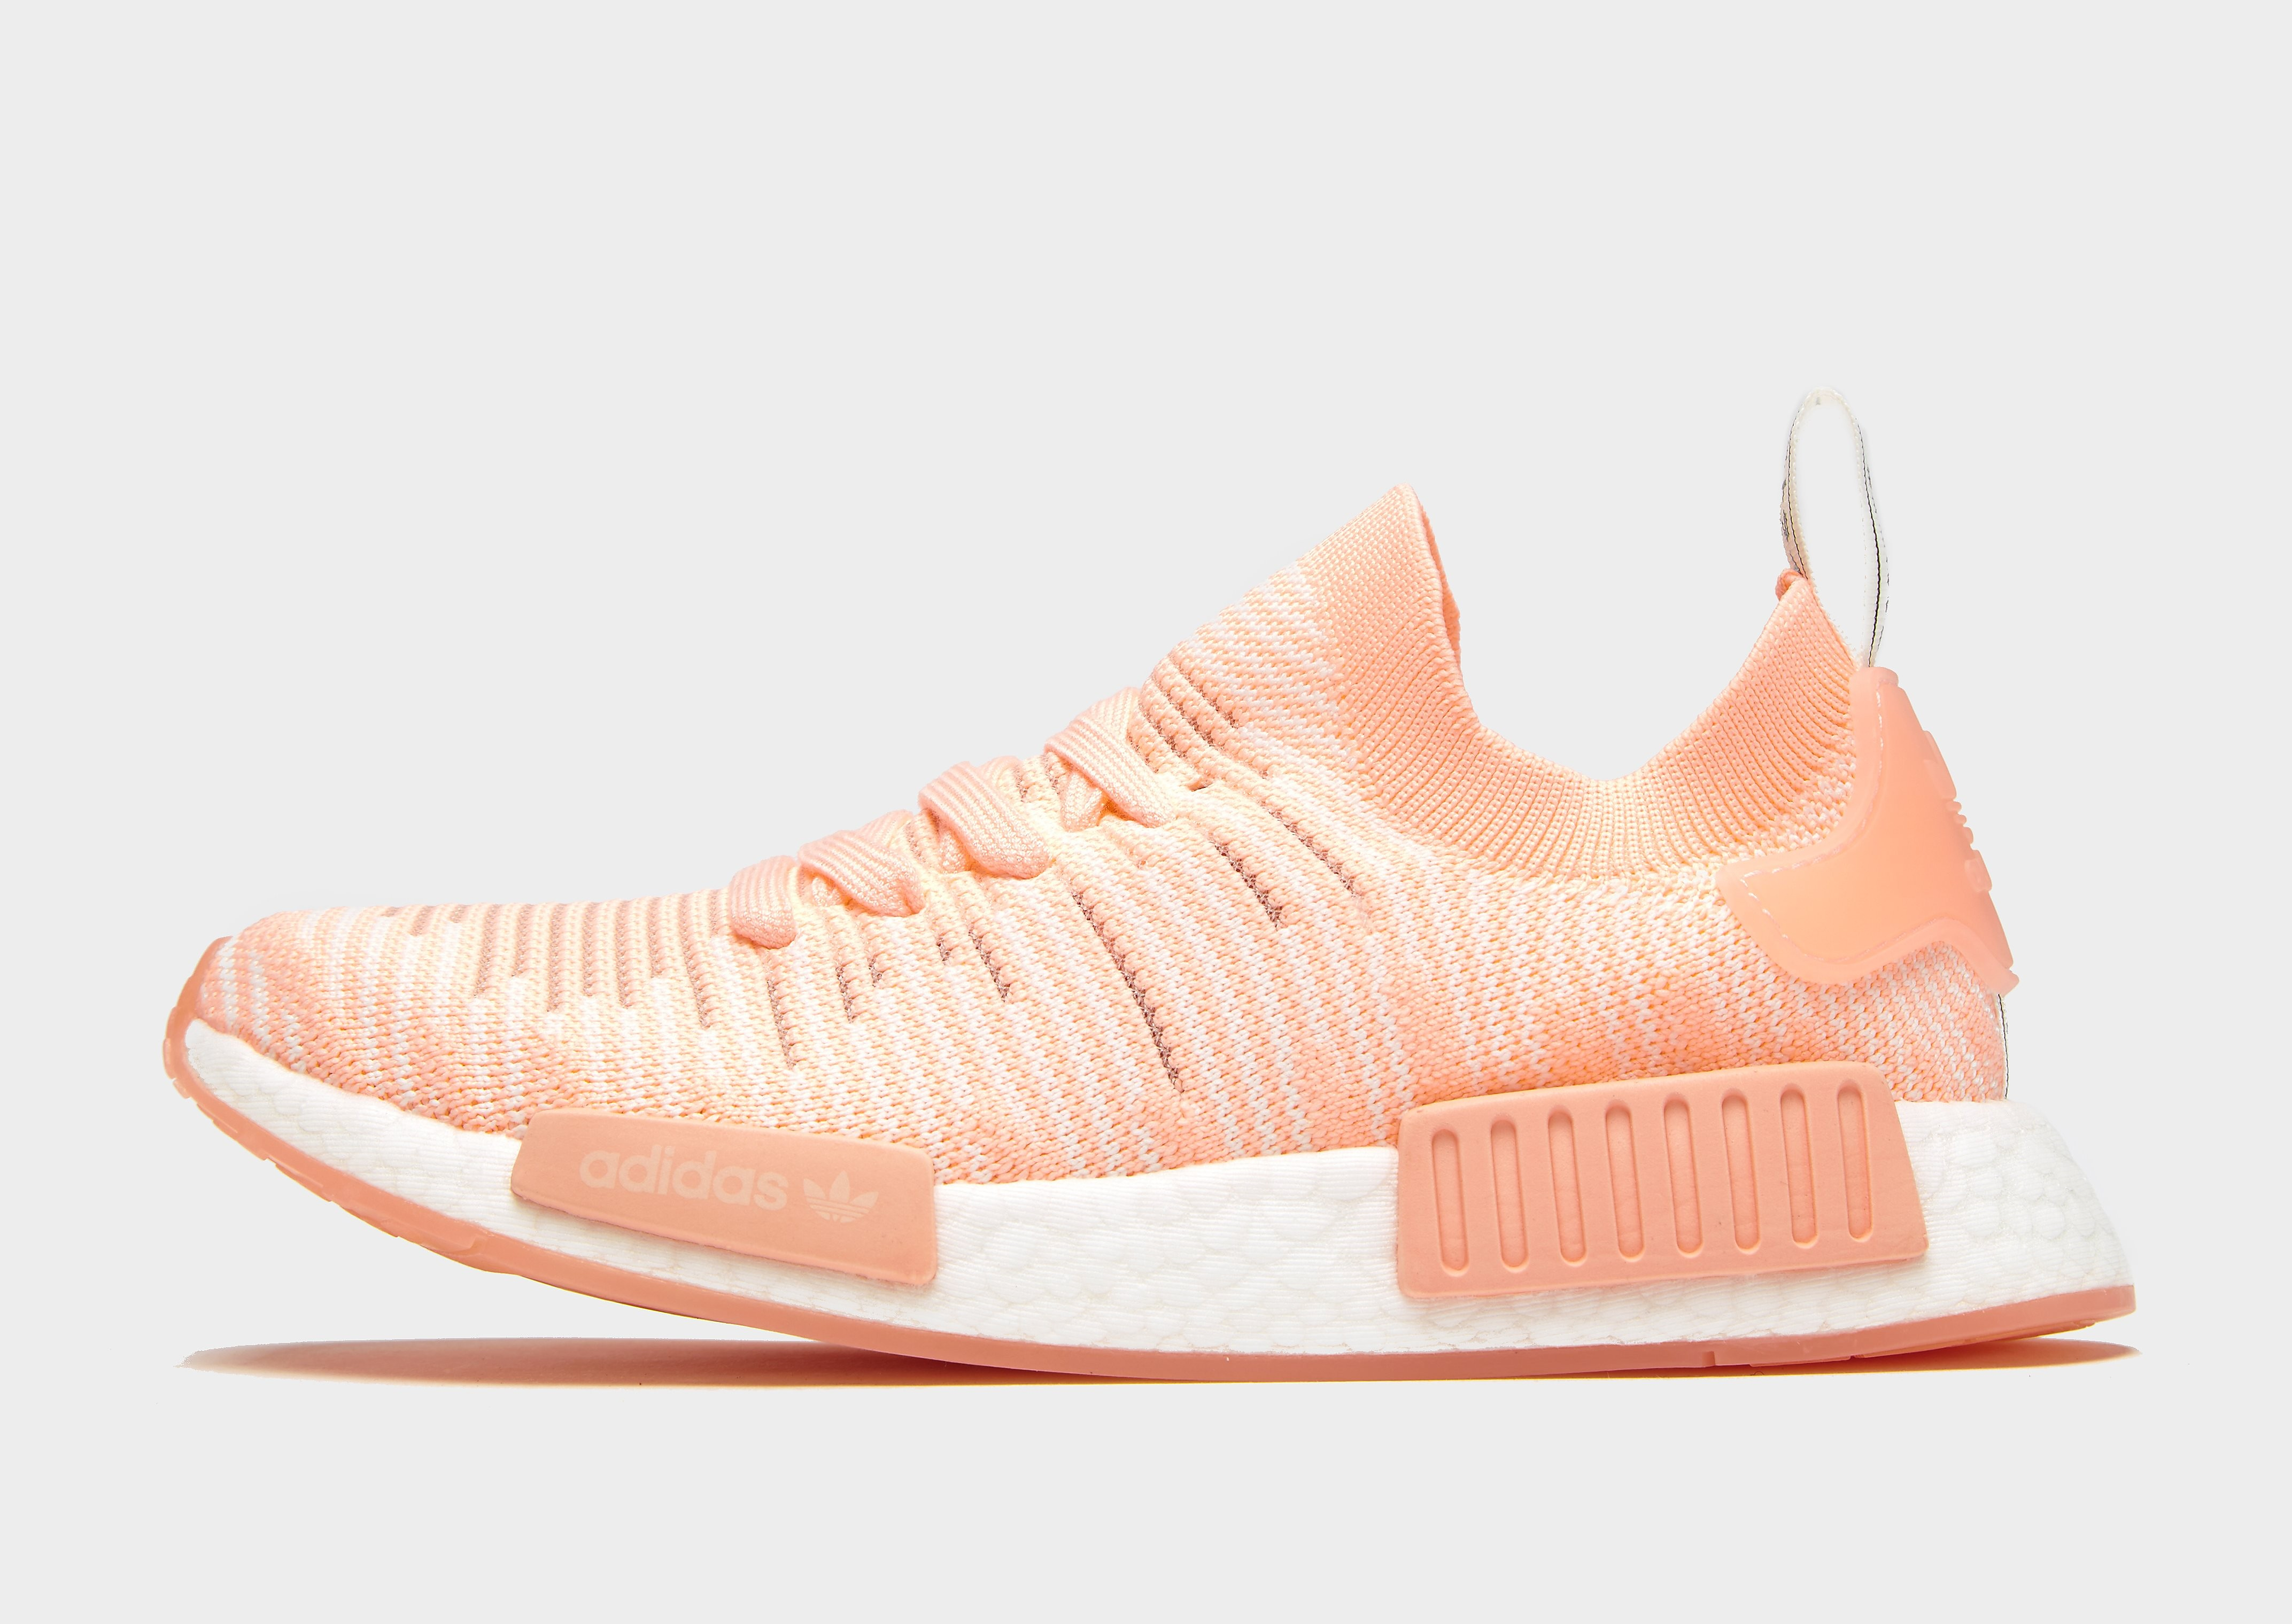 adidas Originals NMD_R1 STLT Primeknit Dames - Peach/White - Dames